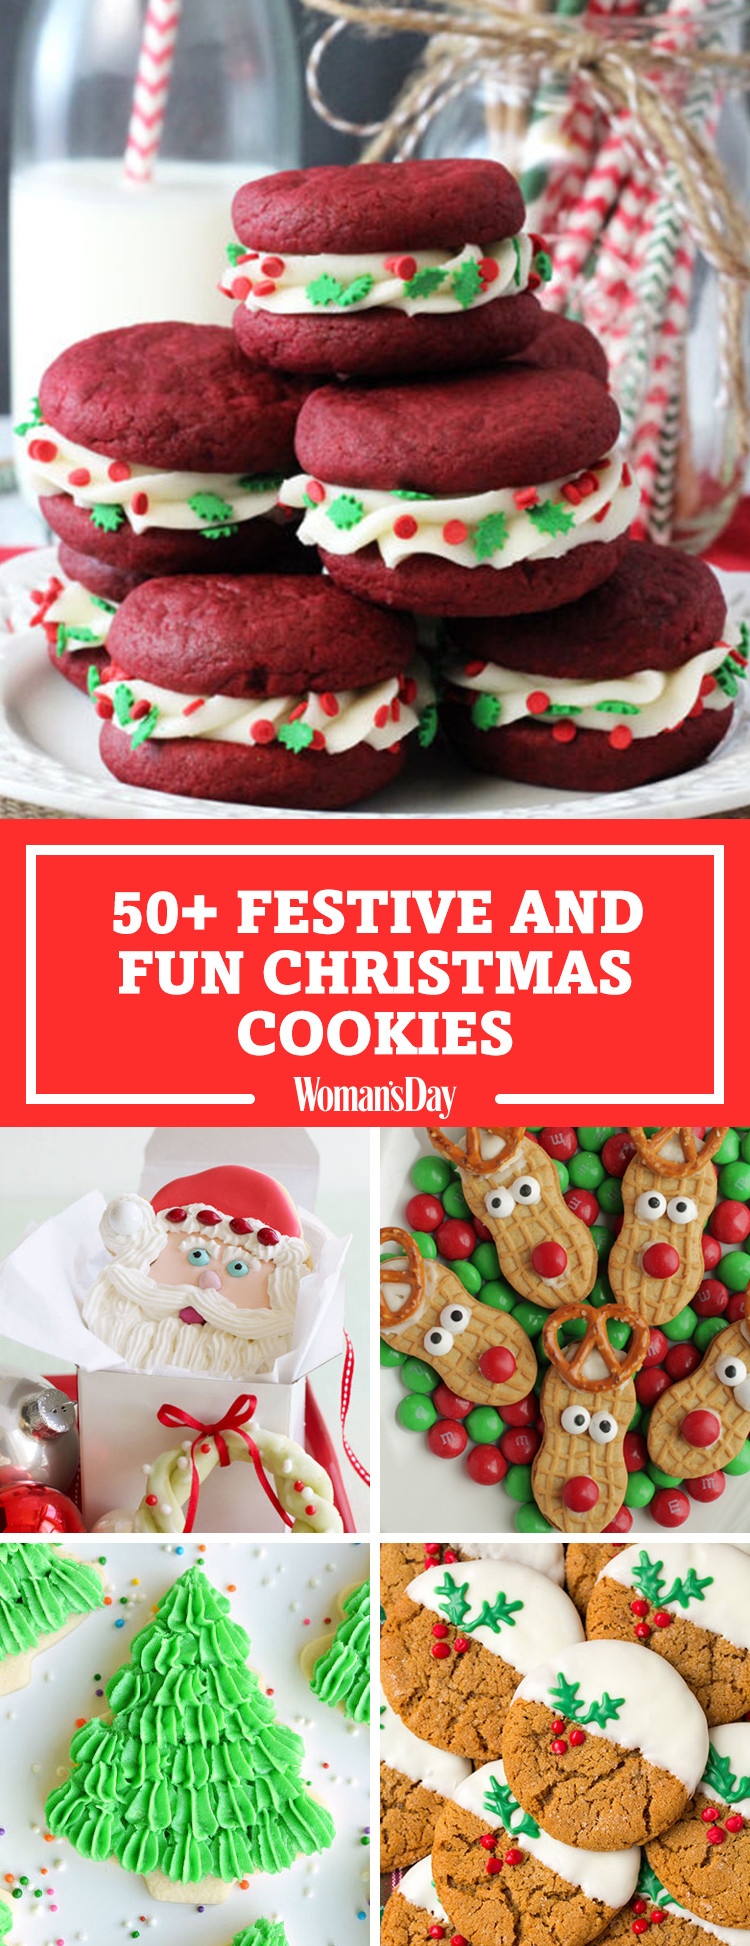 Fun Easy Christmas Cookies  59 Easy Christmas Cookies Best Recipes for Holiday